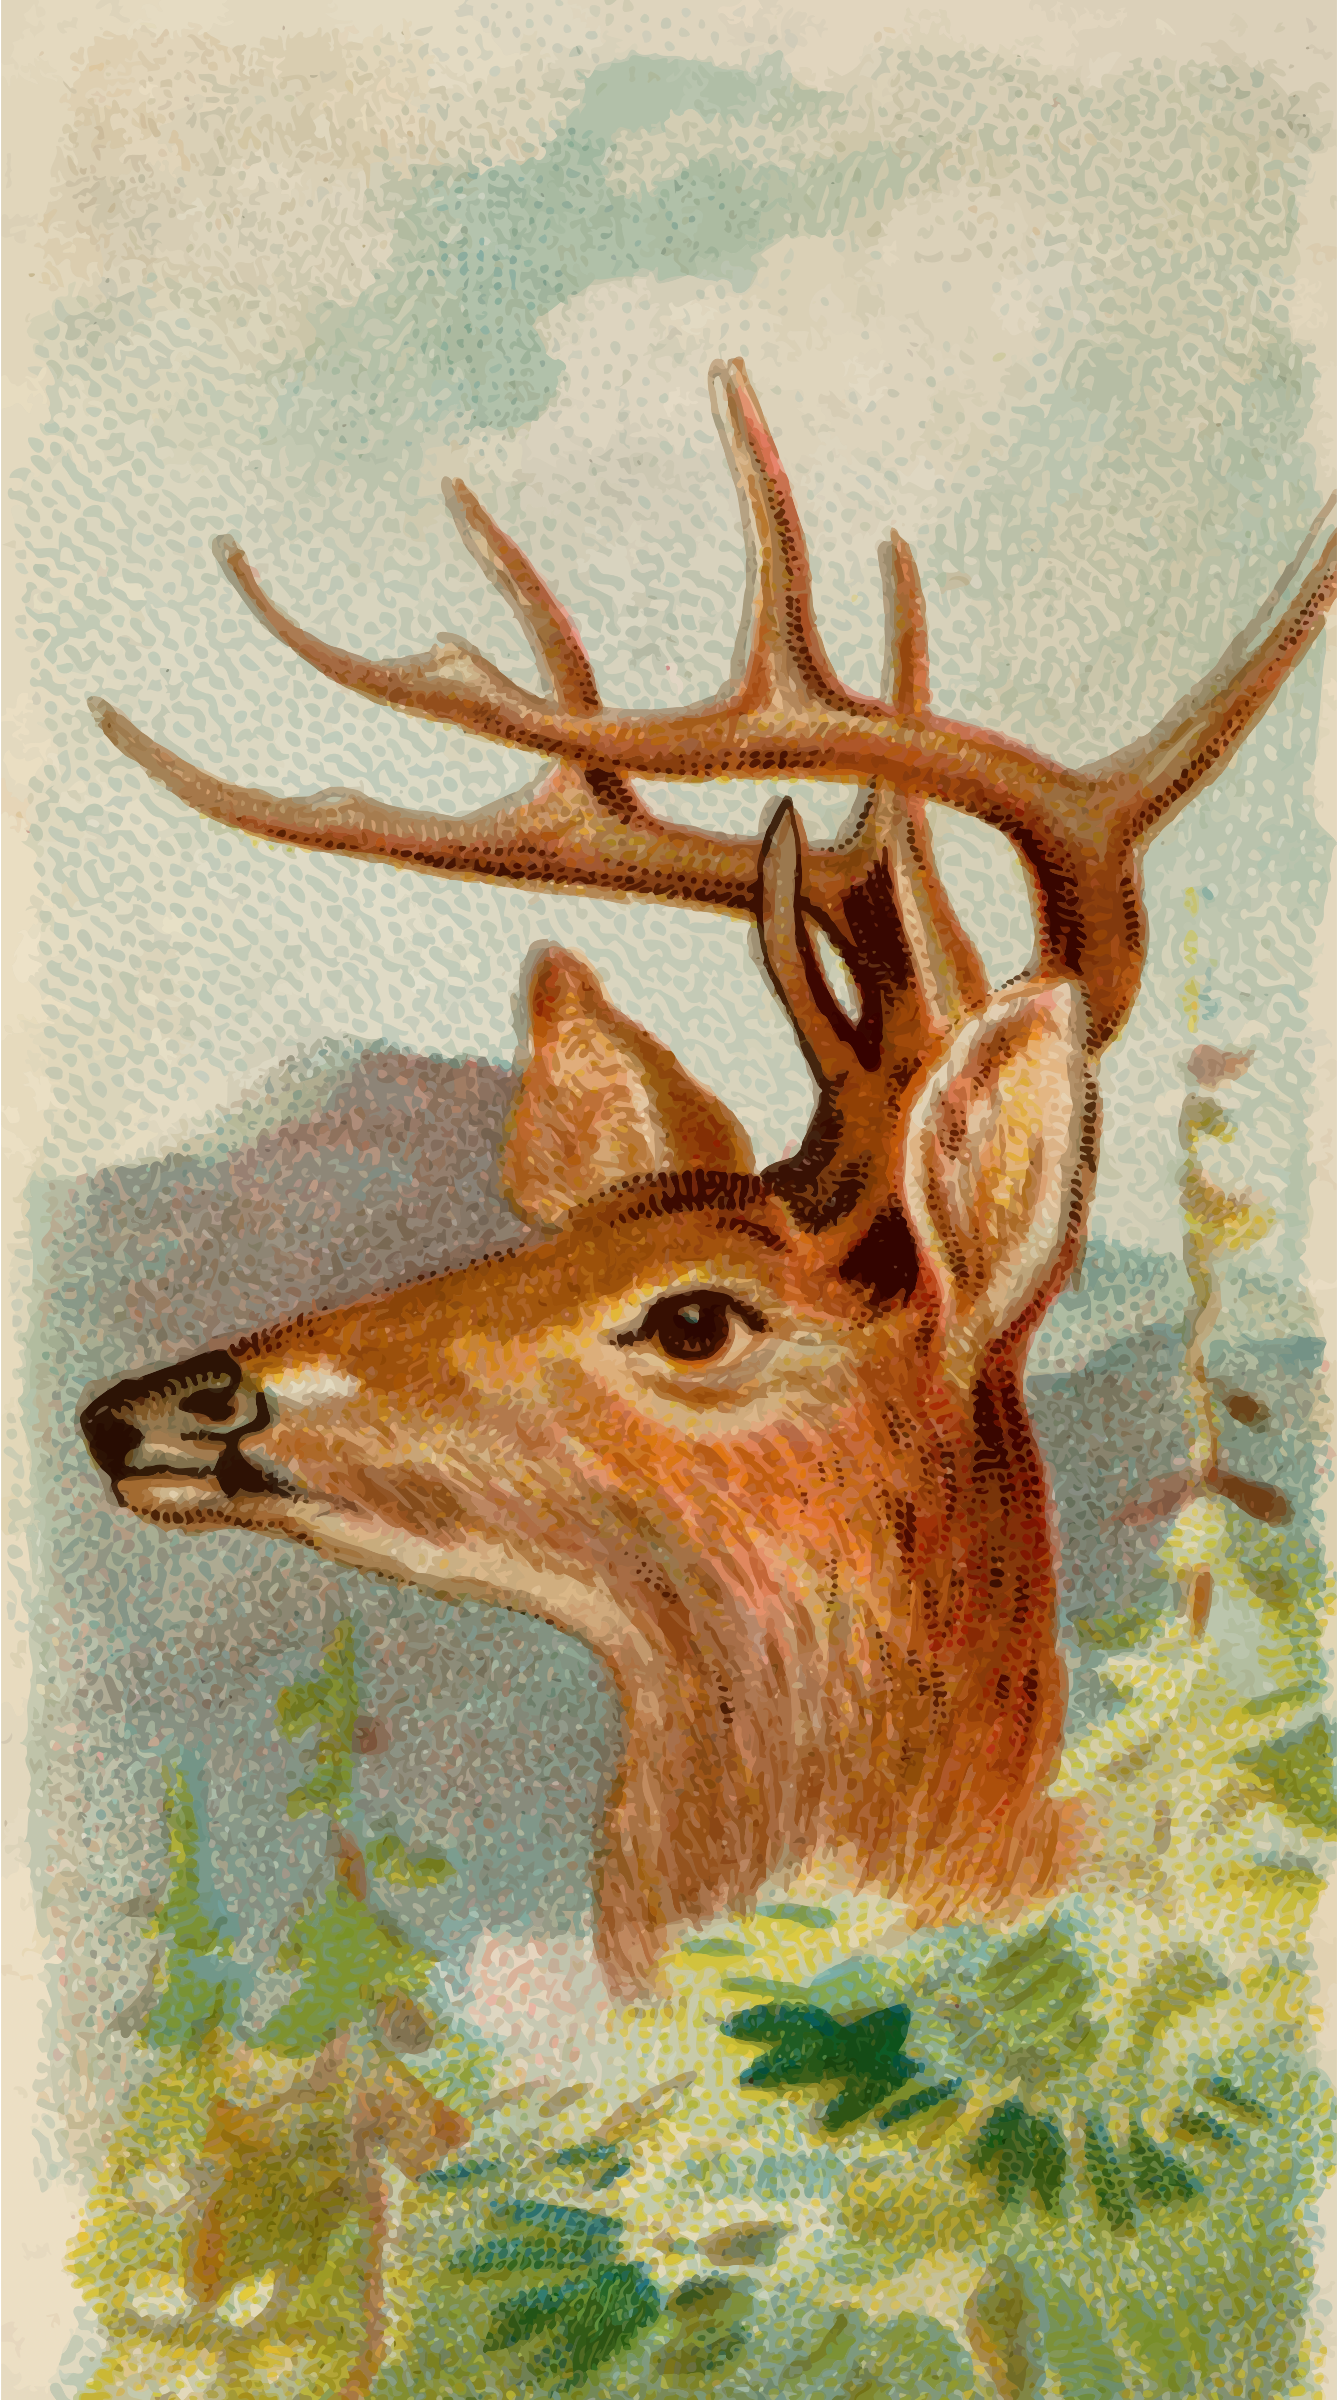 Cigarette card - Virginian deer by Firkin